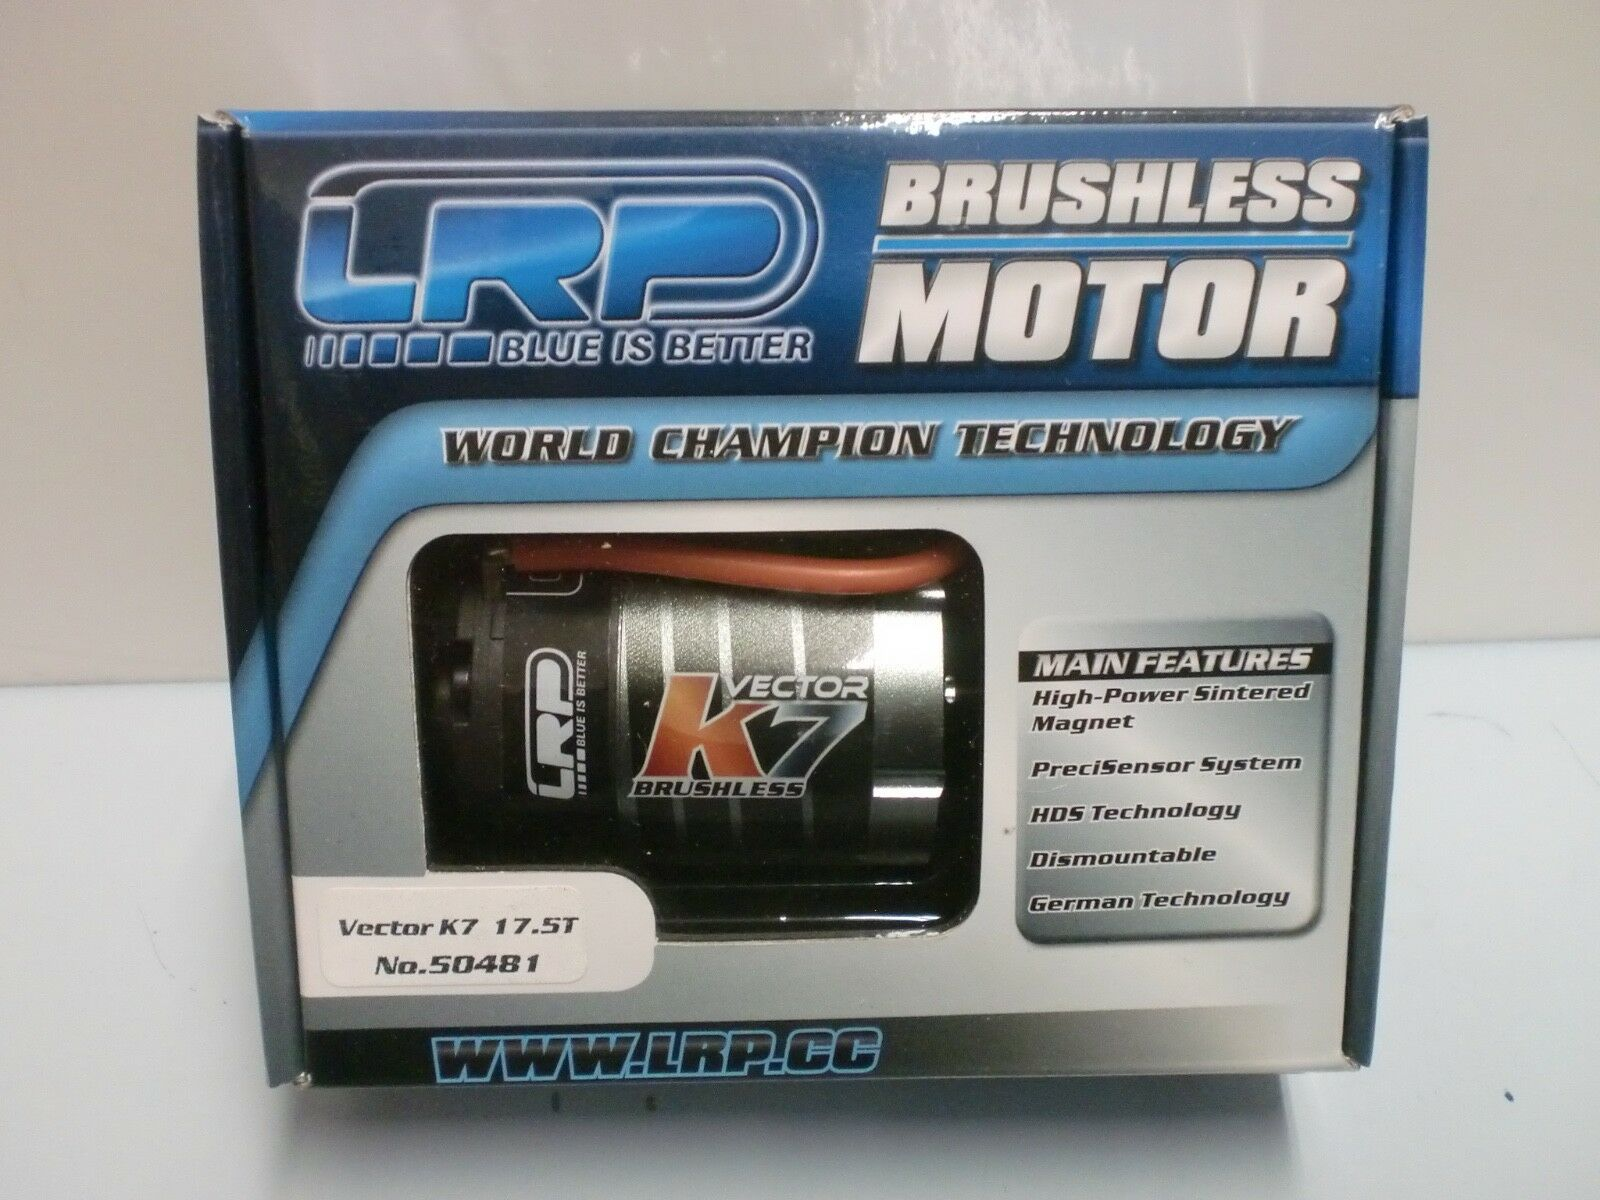 LRP 1 10 - MOTORE BRUSHLESS vector k7 17.5t - ART. 50481